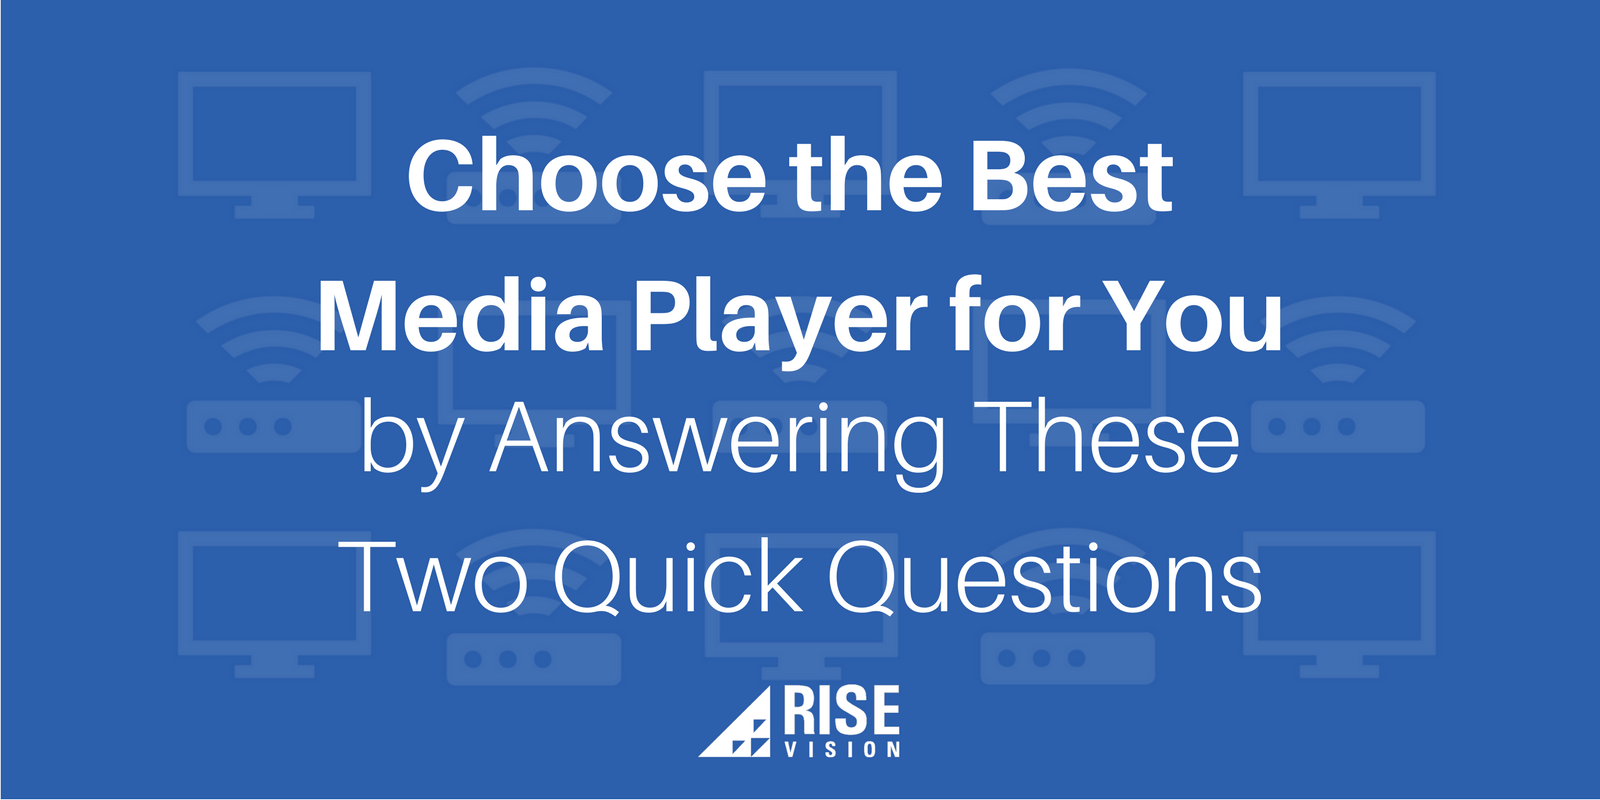 Blog Images and Videos - Nick Choose the Best Media Player for Your Digital Signage by Answering These Two Quick Questions